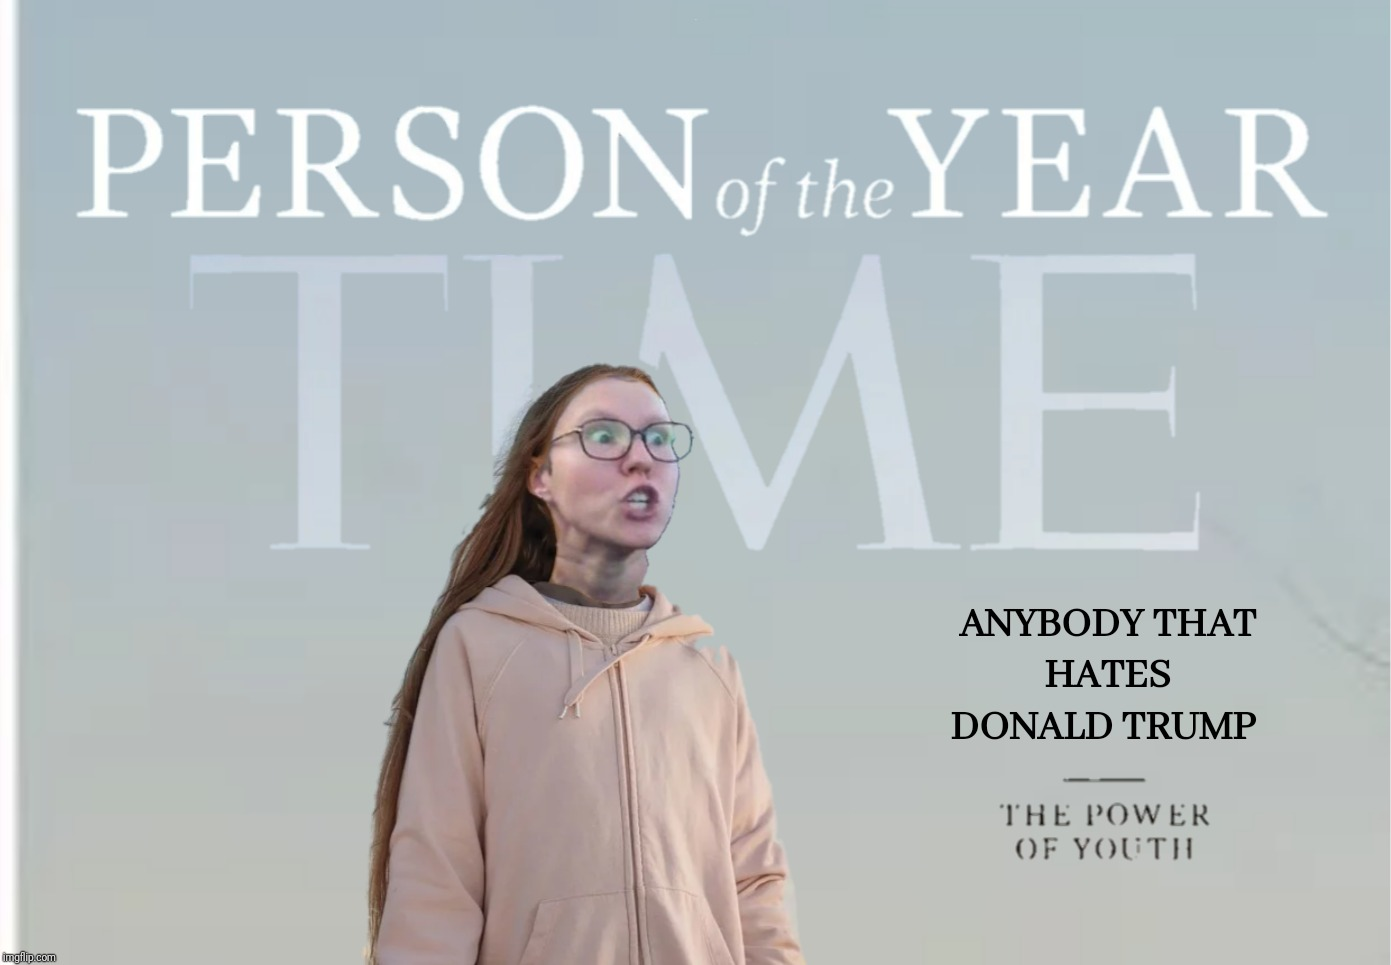 Social Justice Worrier | T | image tagged in bad photoshop,time magazine person of the year,social justice warrior,greta thunberg | made w/ Imgflip meme maker